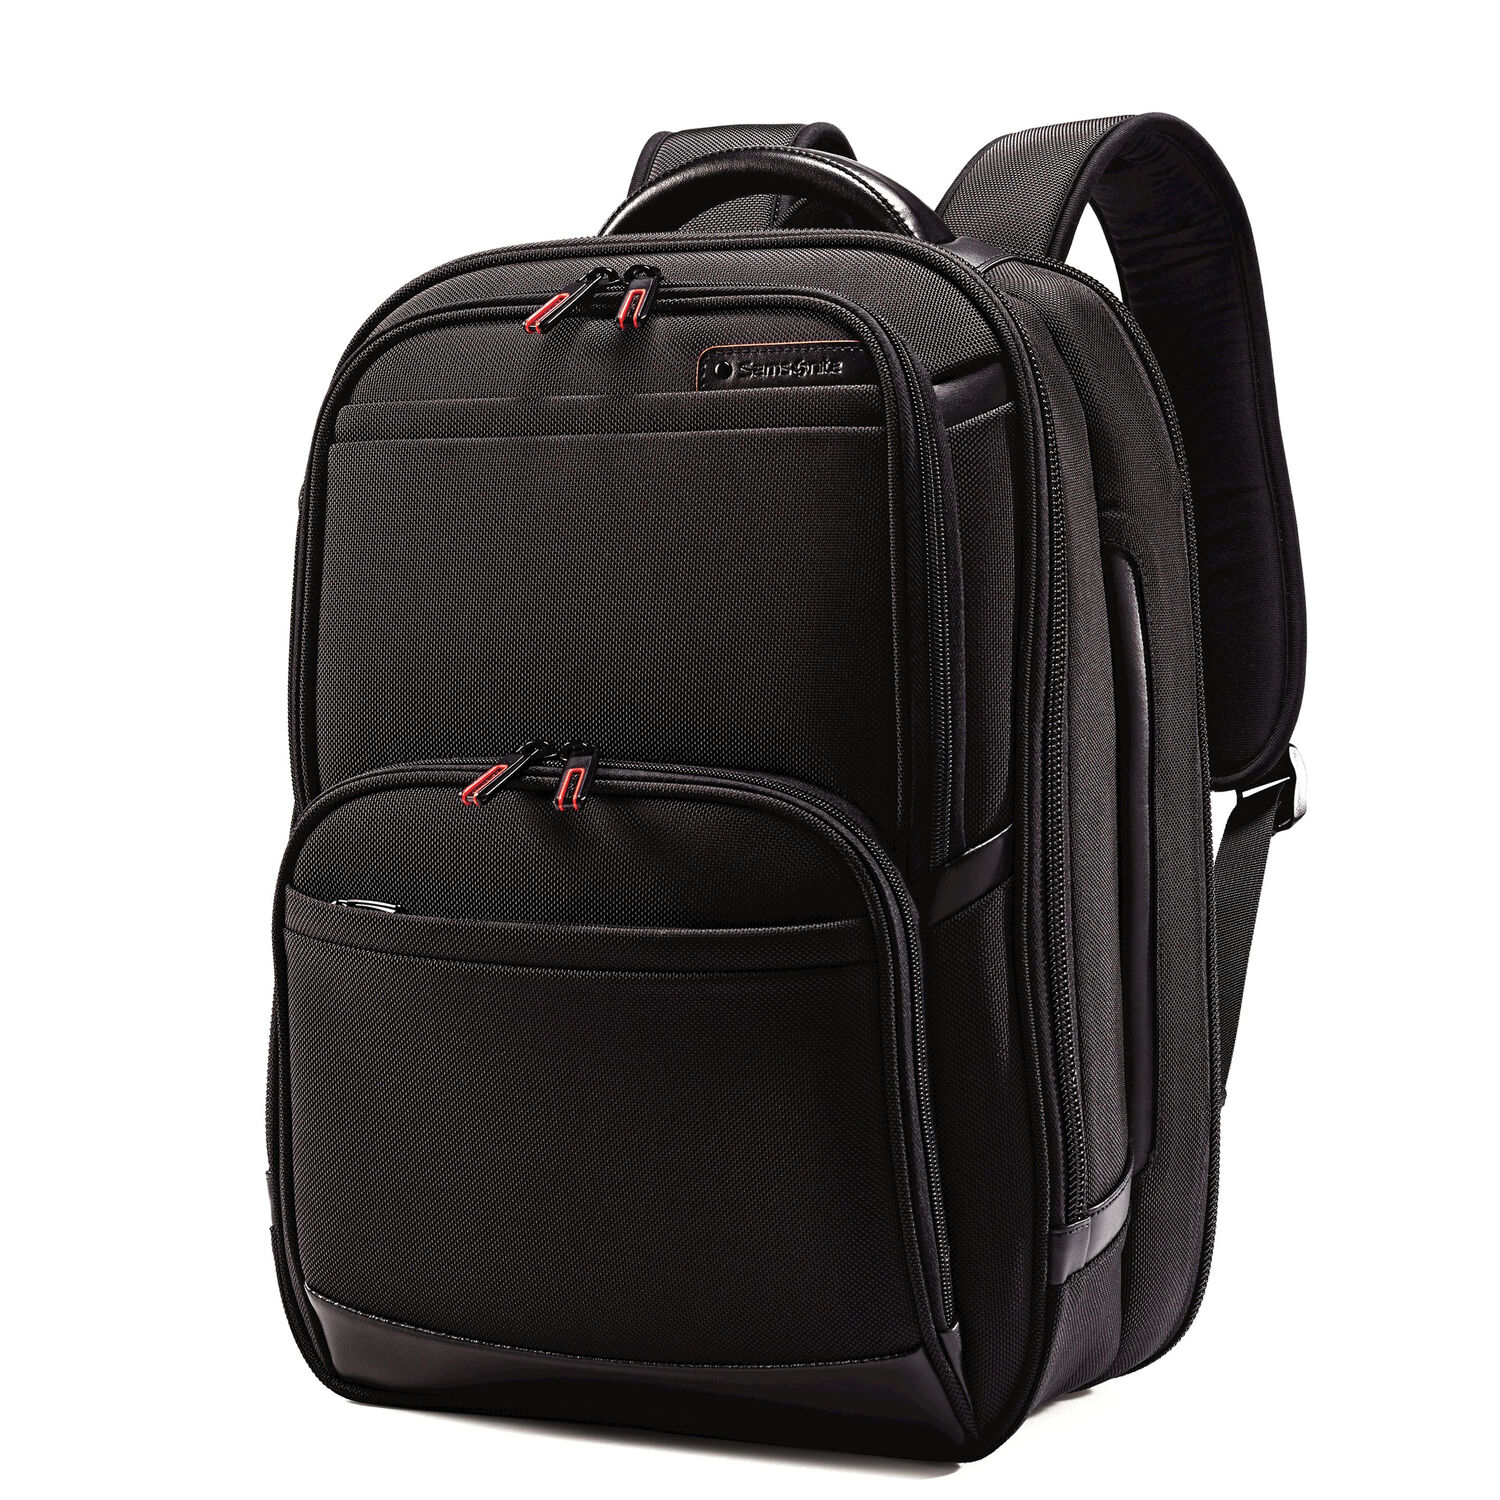 Samsonite Pro 4 Dlx Perfect Fit Urban Laptop Backpack